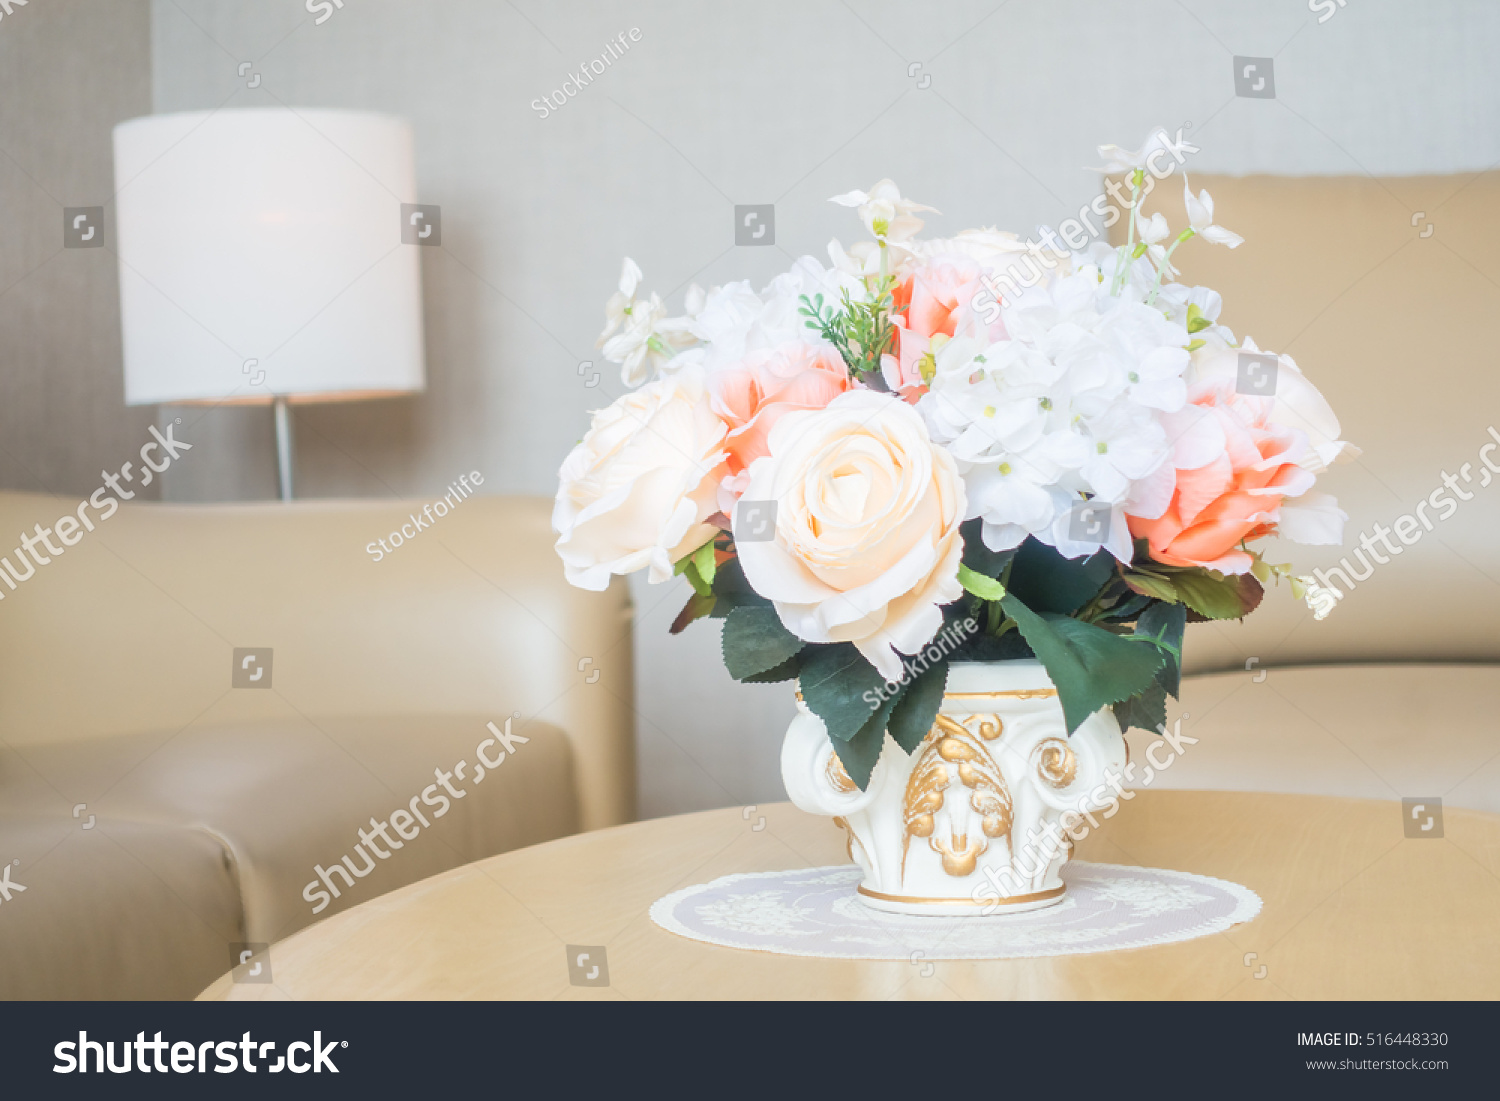 Beautiful flower vase on table decoration stock photo 516448330 beautiful flower vase on table decoration in living room area interior izmirmasajfo